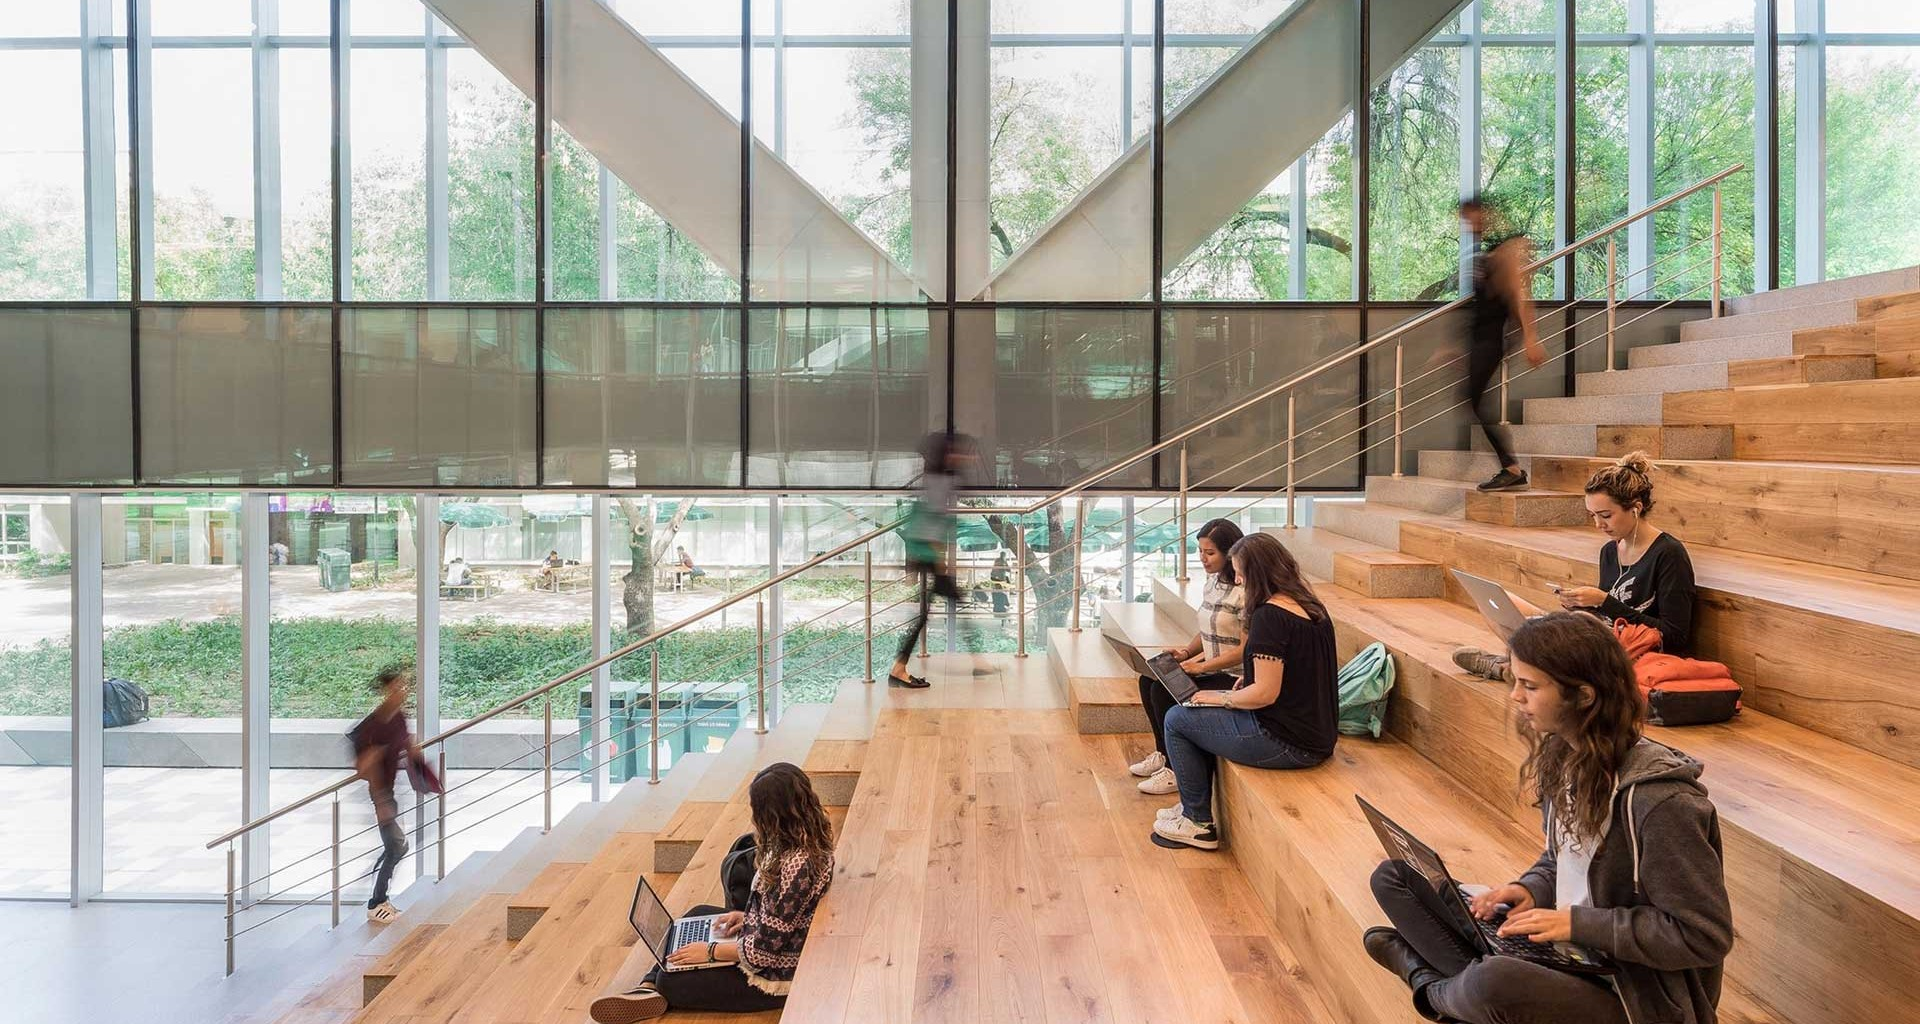 The new Tec library receives best-in-the-world design accolade